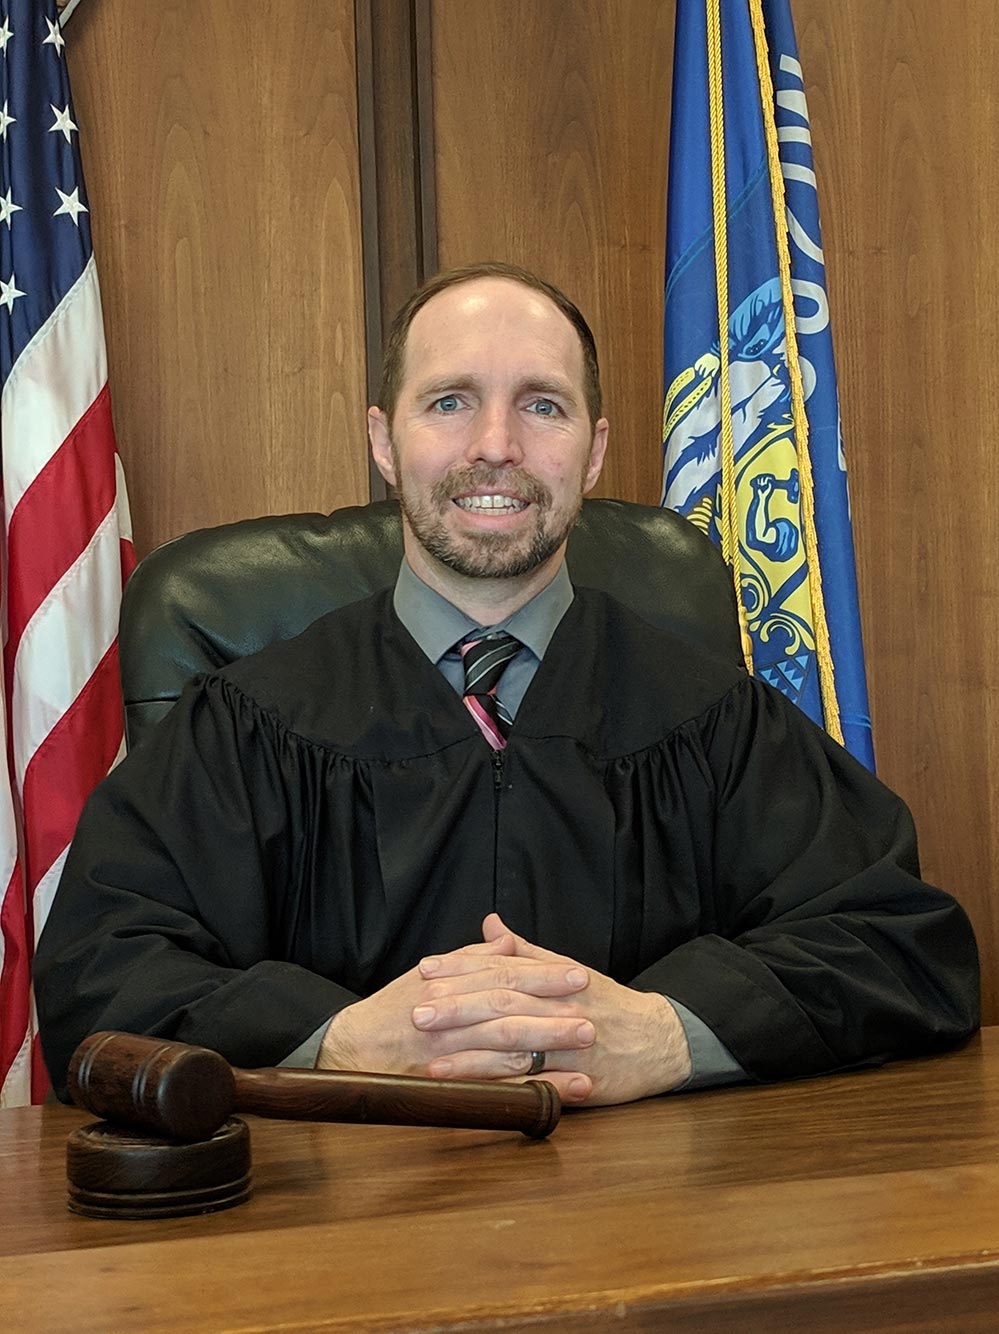 Pro-Life Wisconsin Victory Fund PAC Endorses Judge Paul Bugenhagen Jr for Court of Appeals